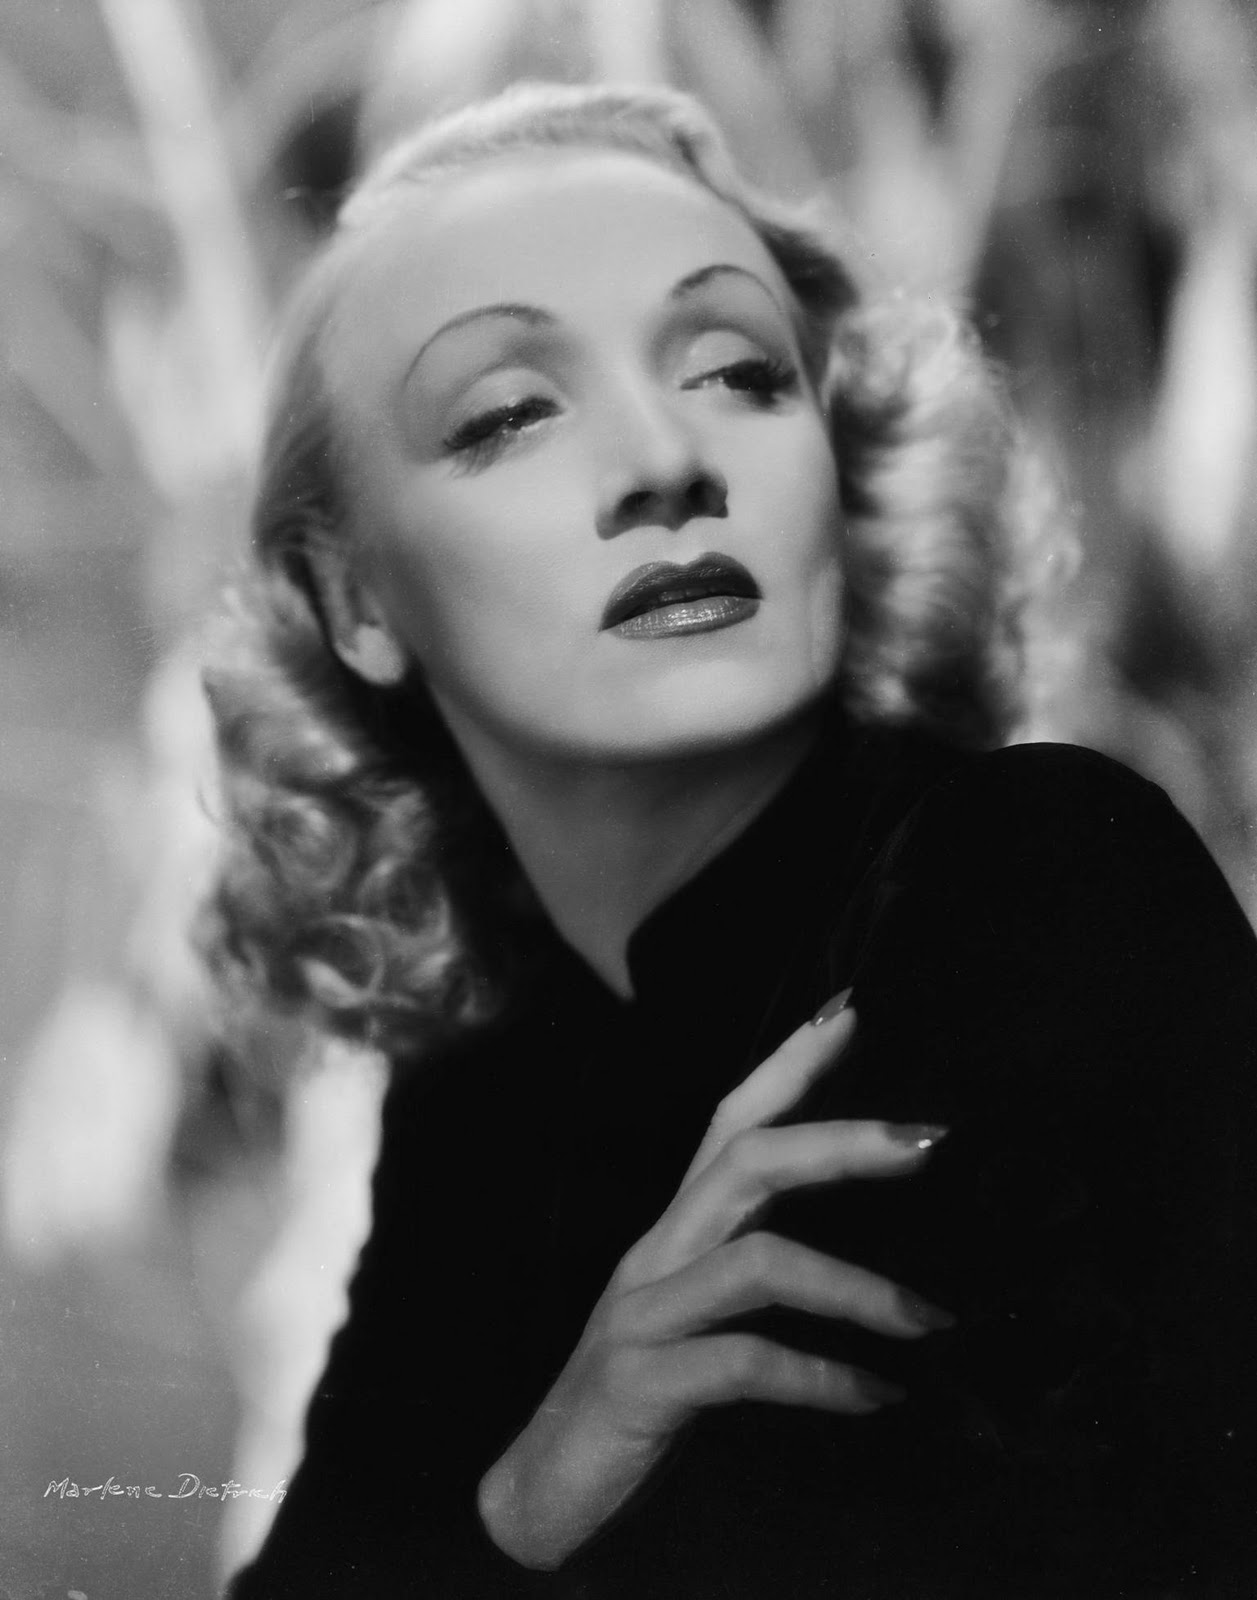 Marlene Dietrich Annex2: It's The Pictures That Got Small ...: THE WEDNESDAY